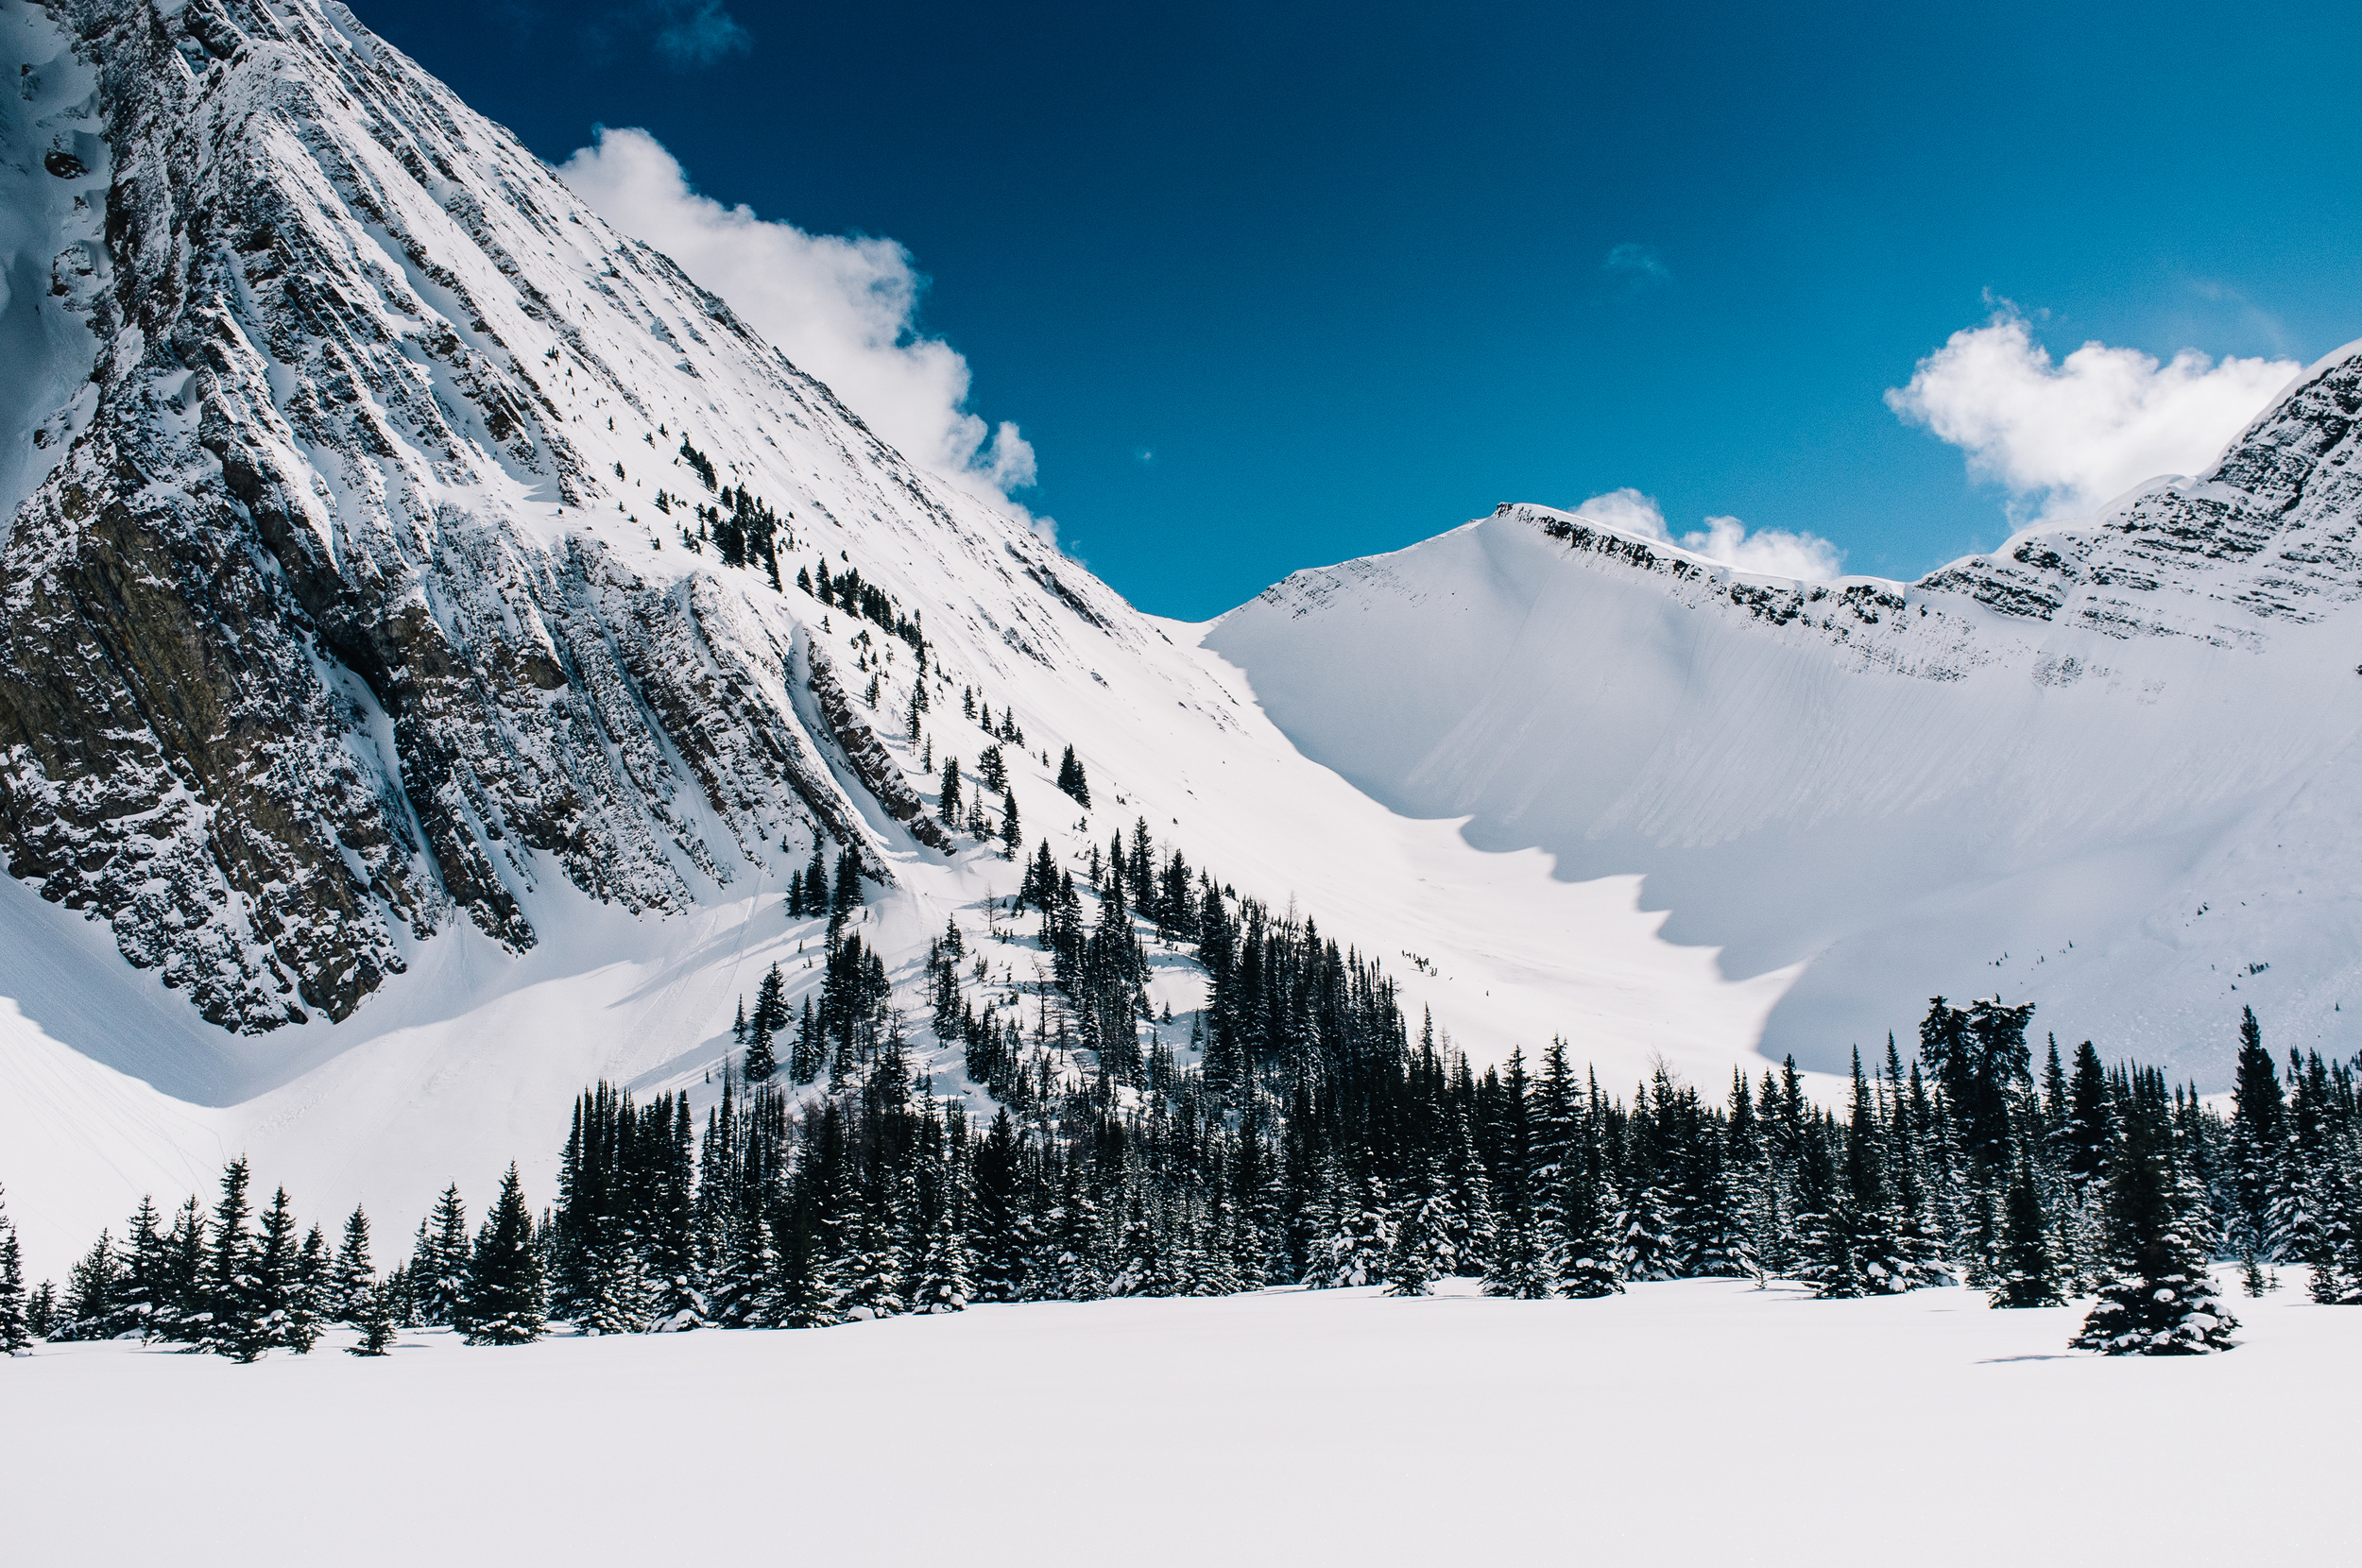 Mount Chester. Peter Lougheed Provincial Park, Alberta. March, 2013.